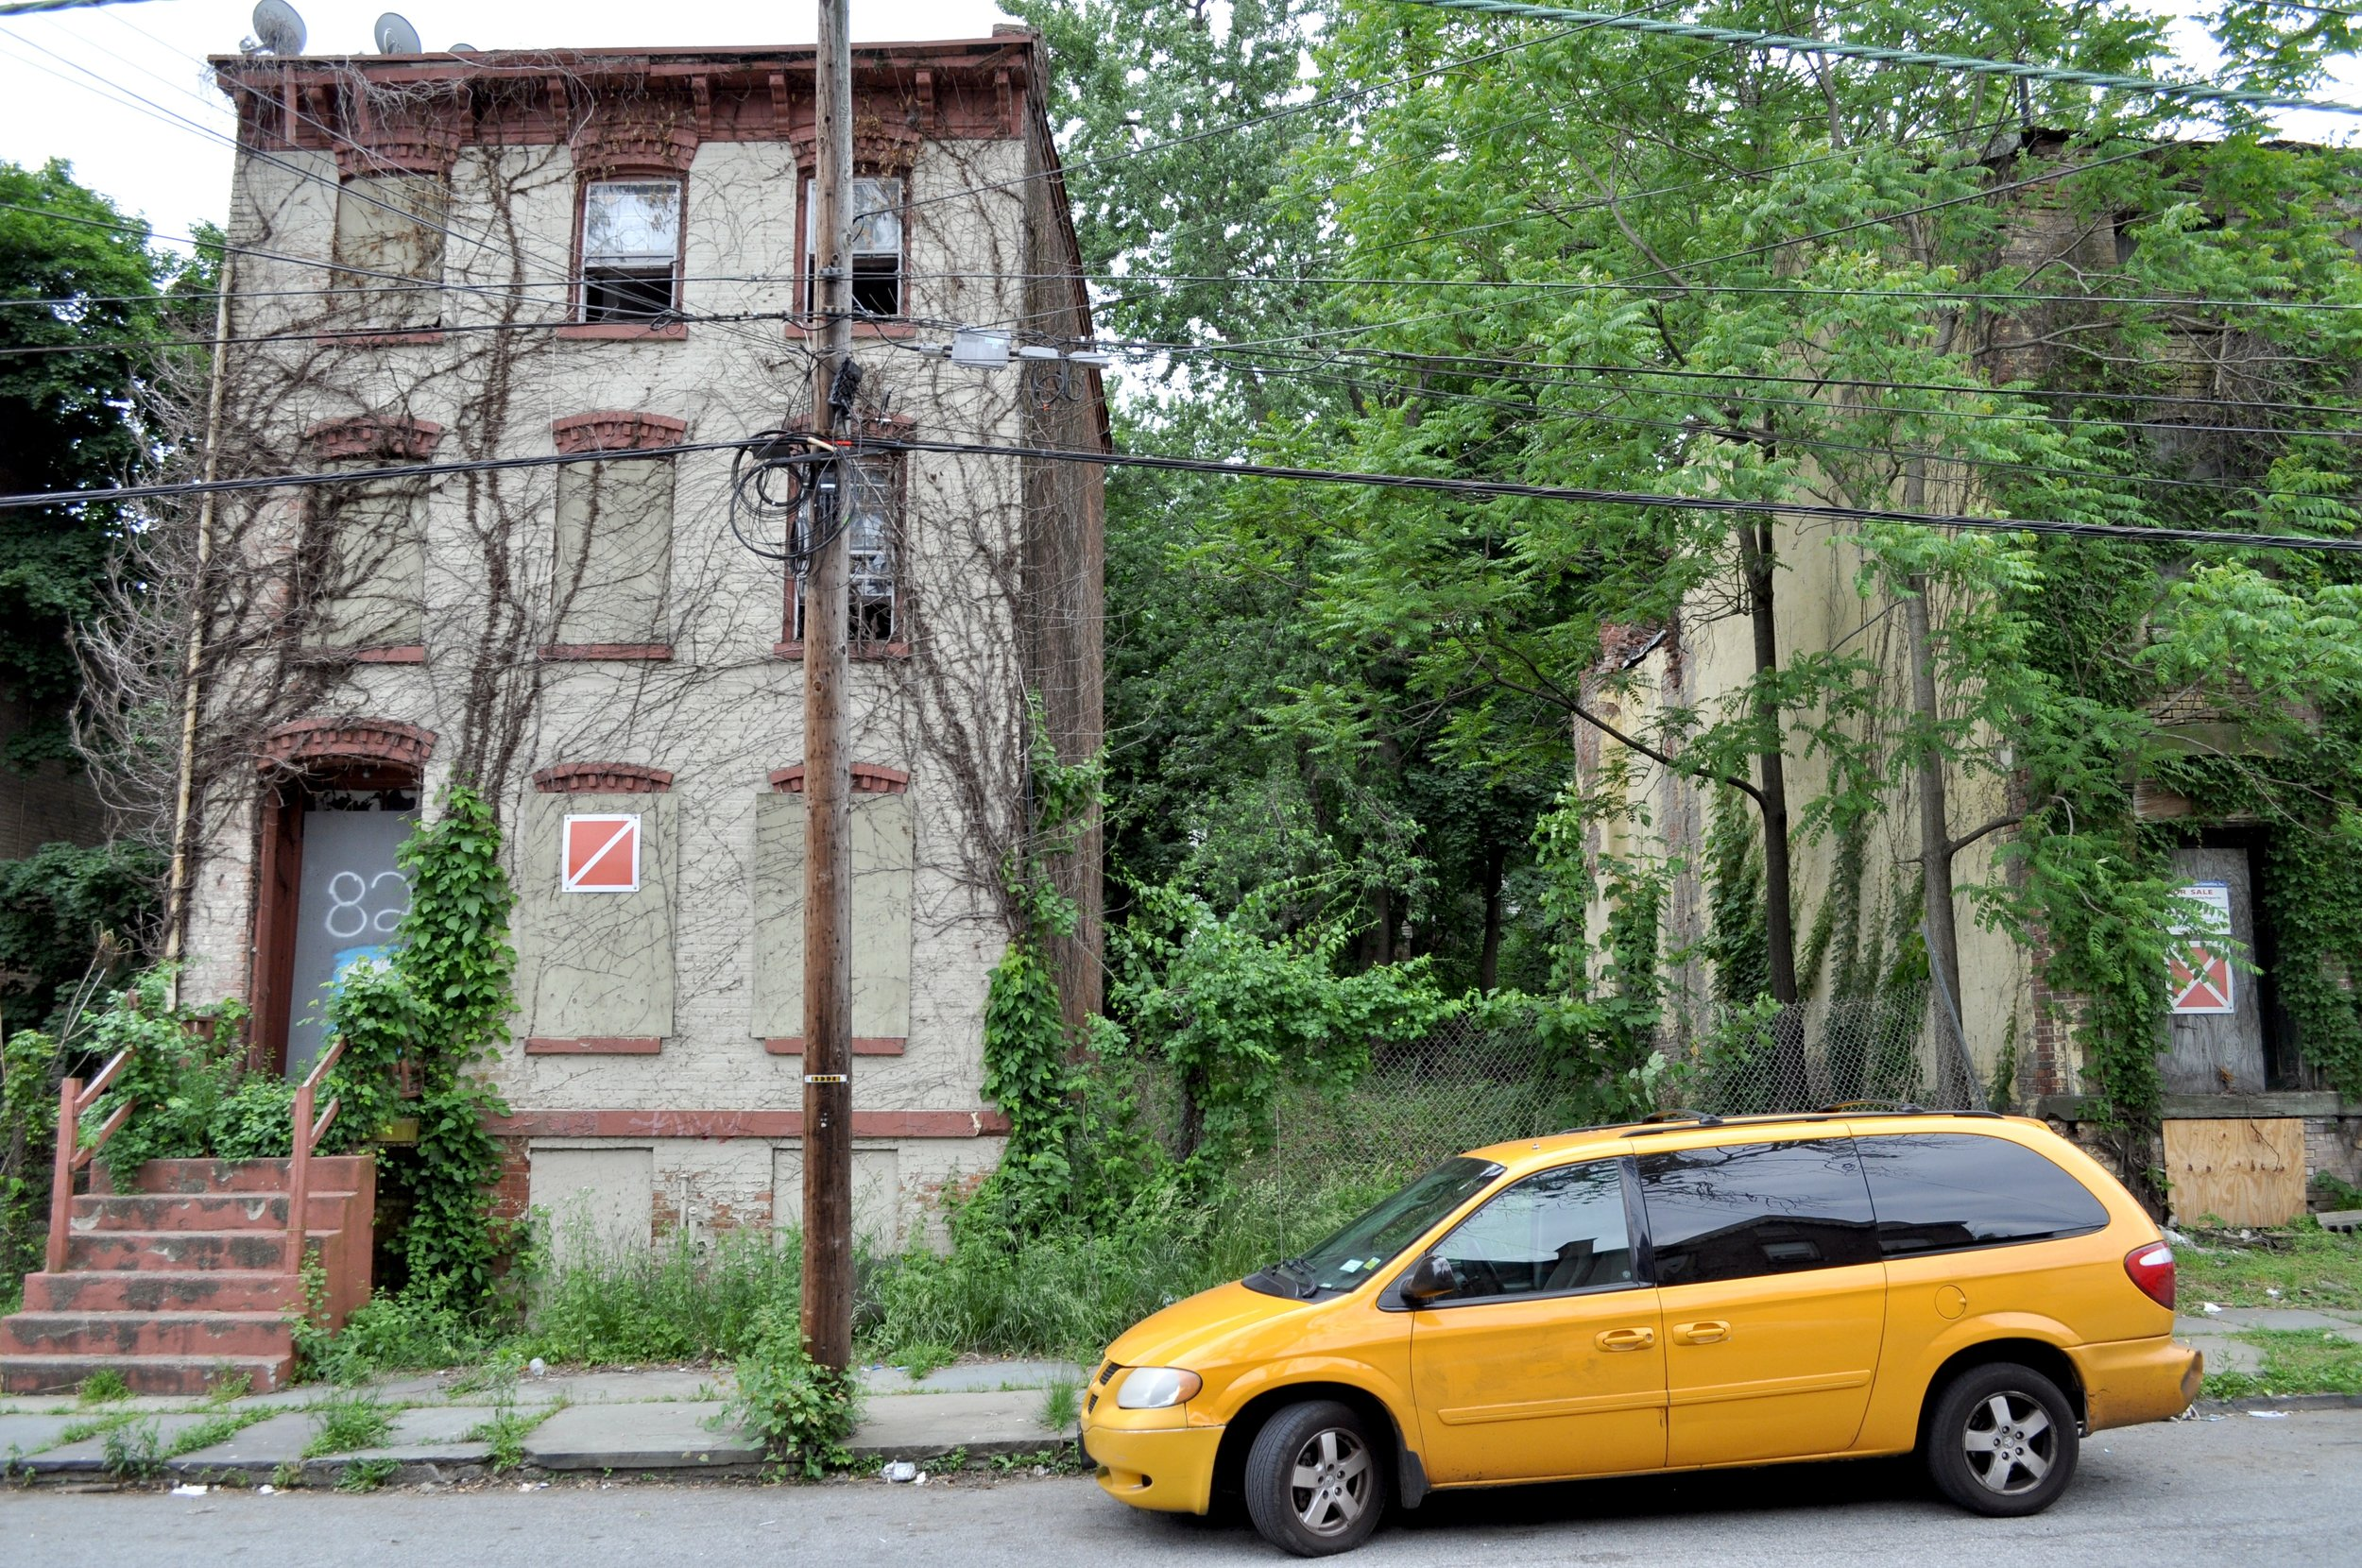 Taxi Van With Abandoned Buildings T.JPG